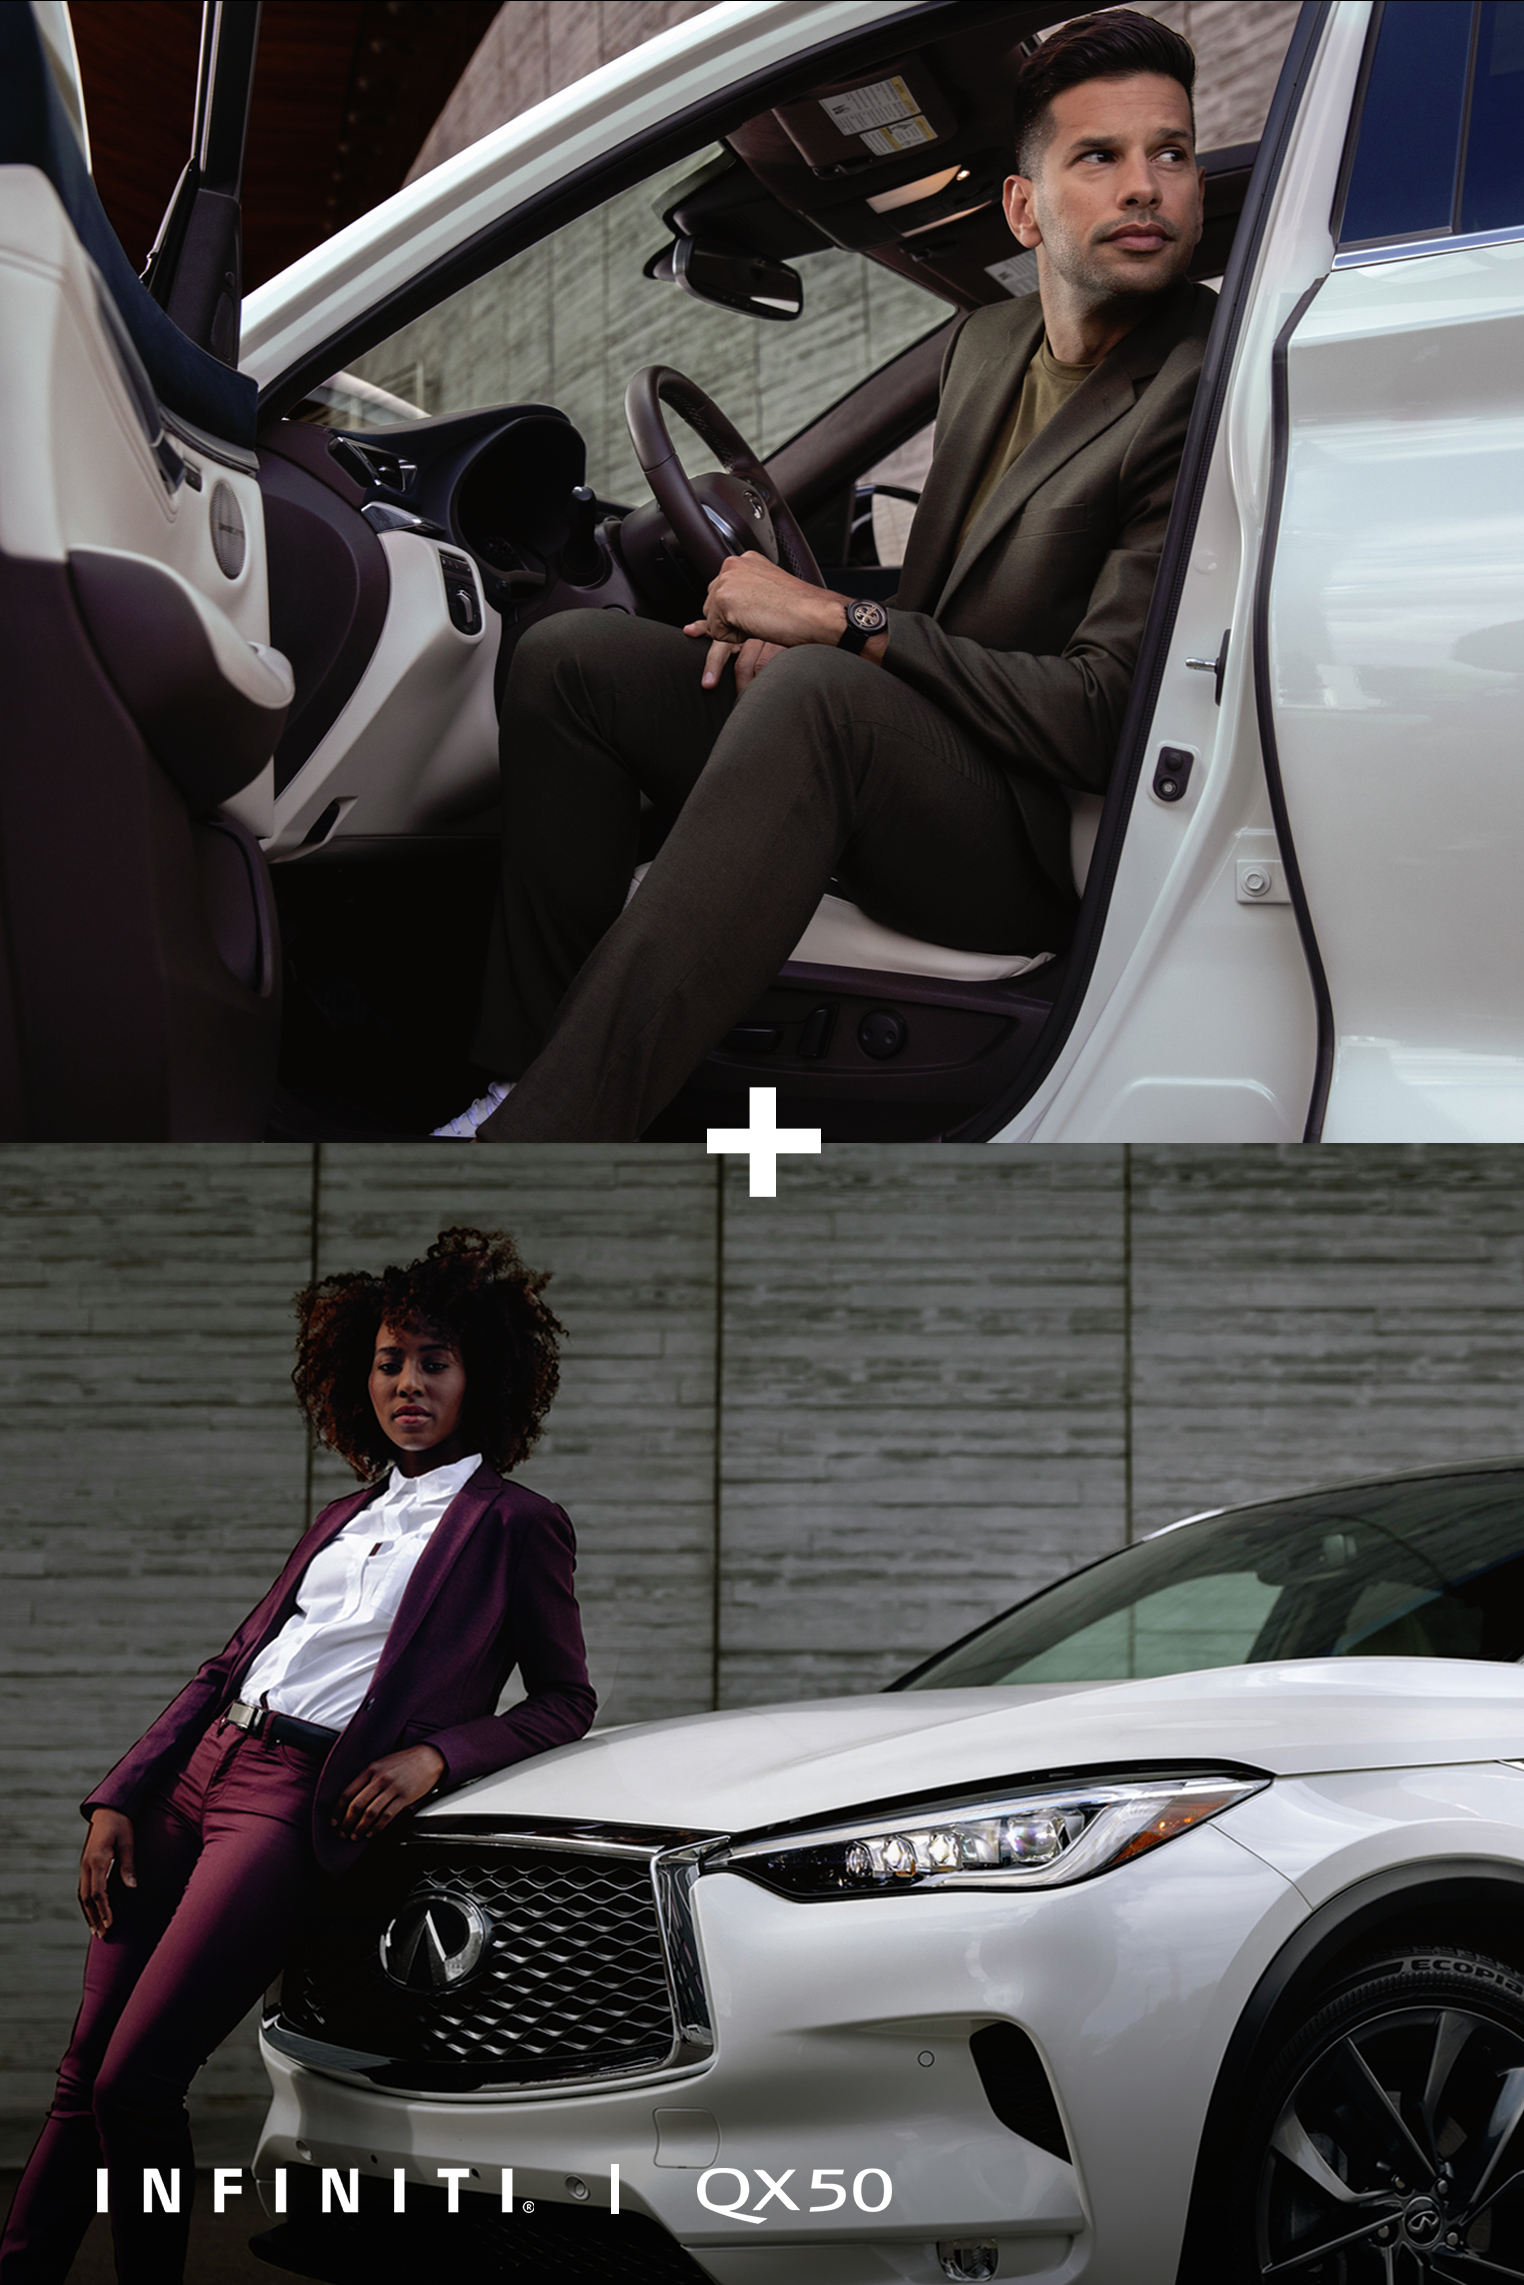 Luxury On Its Own Is Missing Something You Discover Qx50 Today And Enjoy The Sort Of Luxury That S Truly Made Better B In 2020 Infiniti Usa Infiniti Apple Car Play